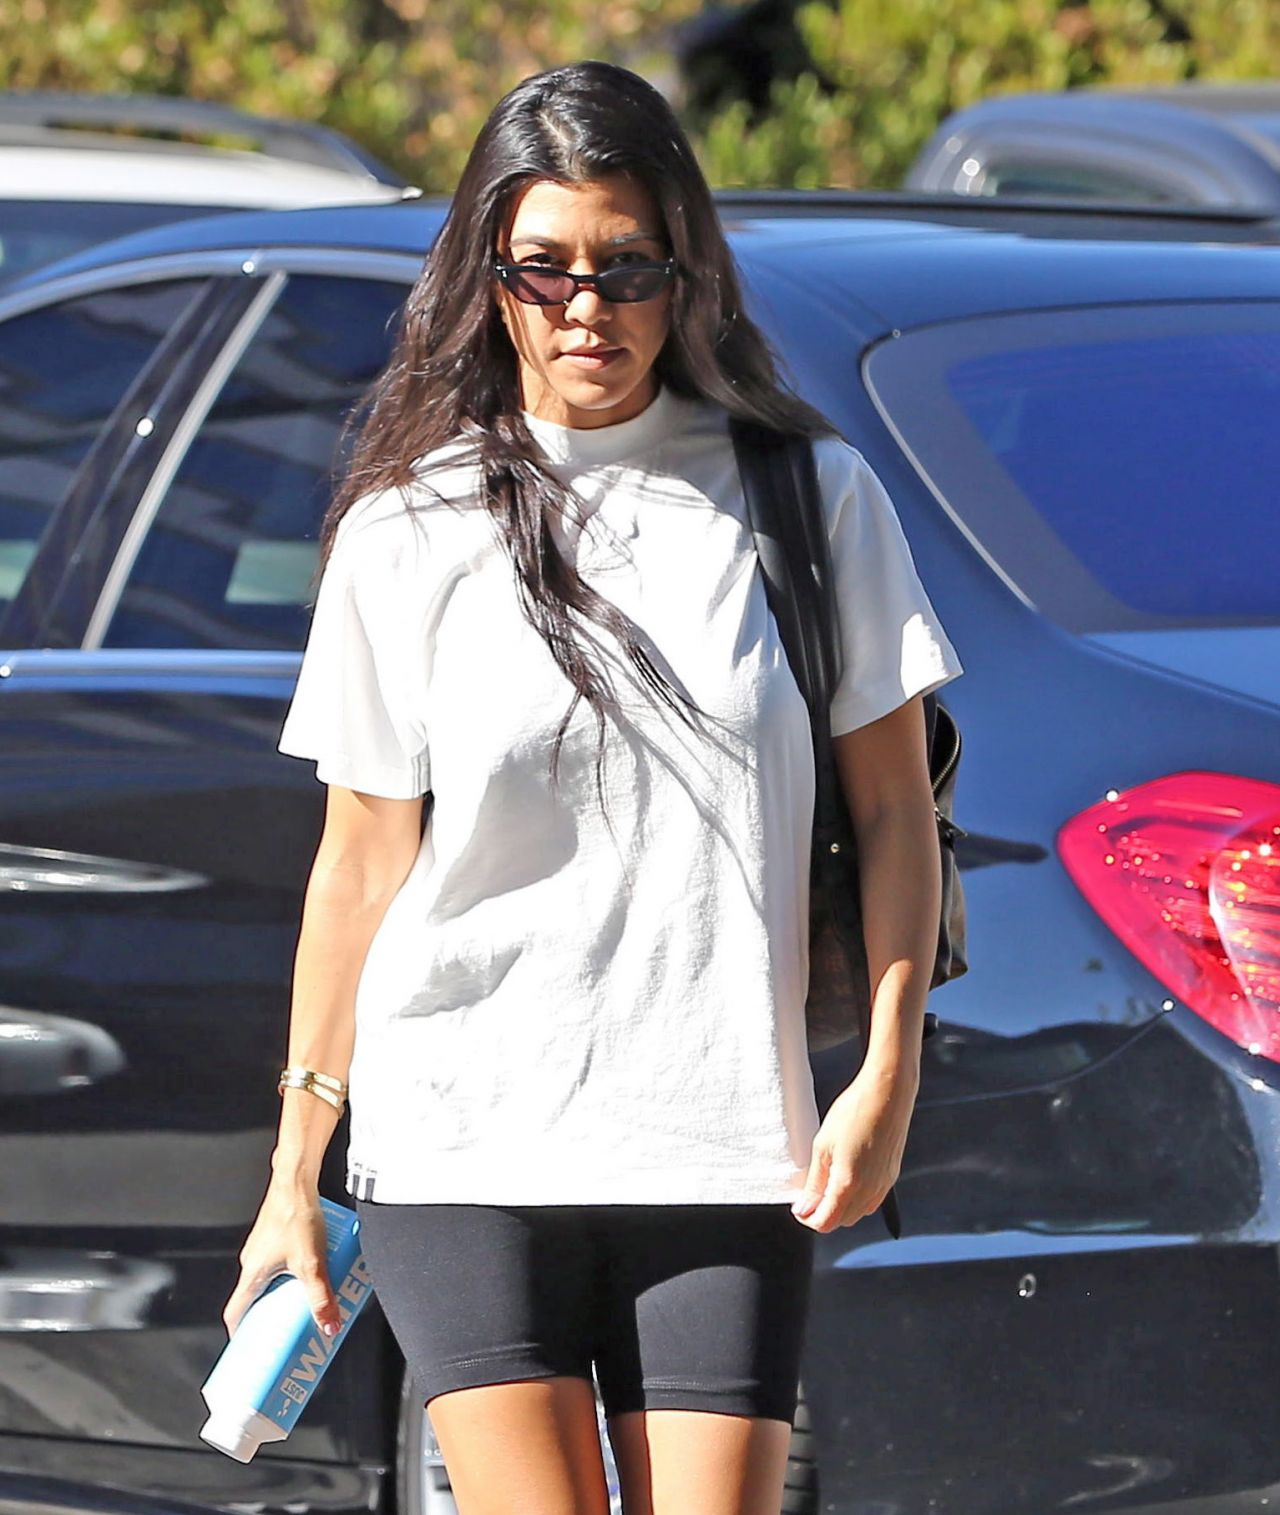 Kourtney kardashian running errands in calabasas ca nude (81 photos), Fappening Celebrites pic